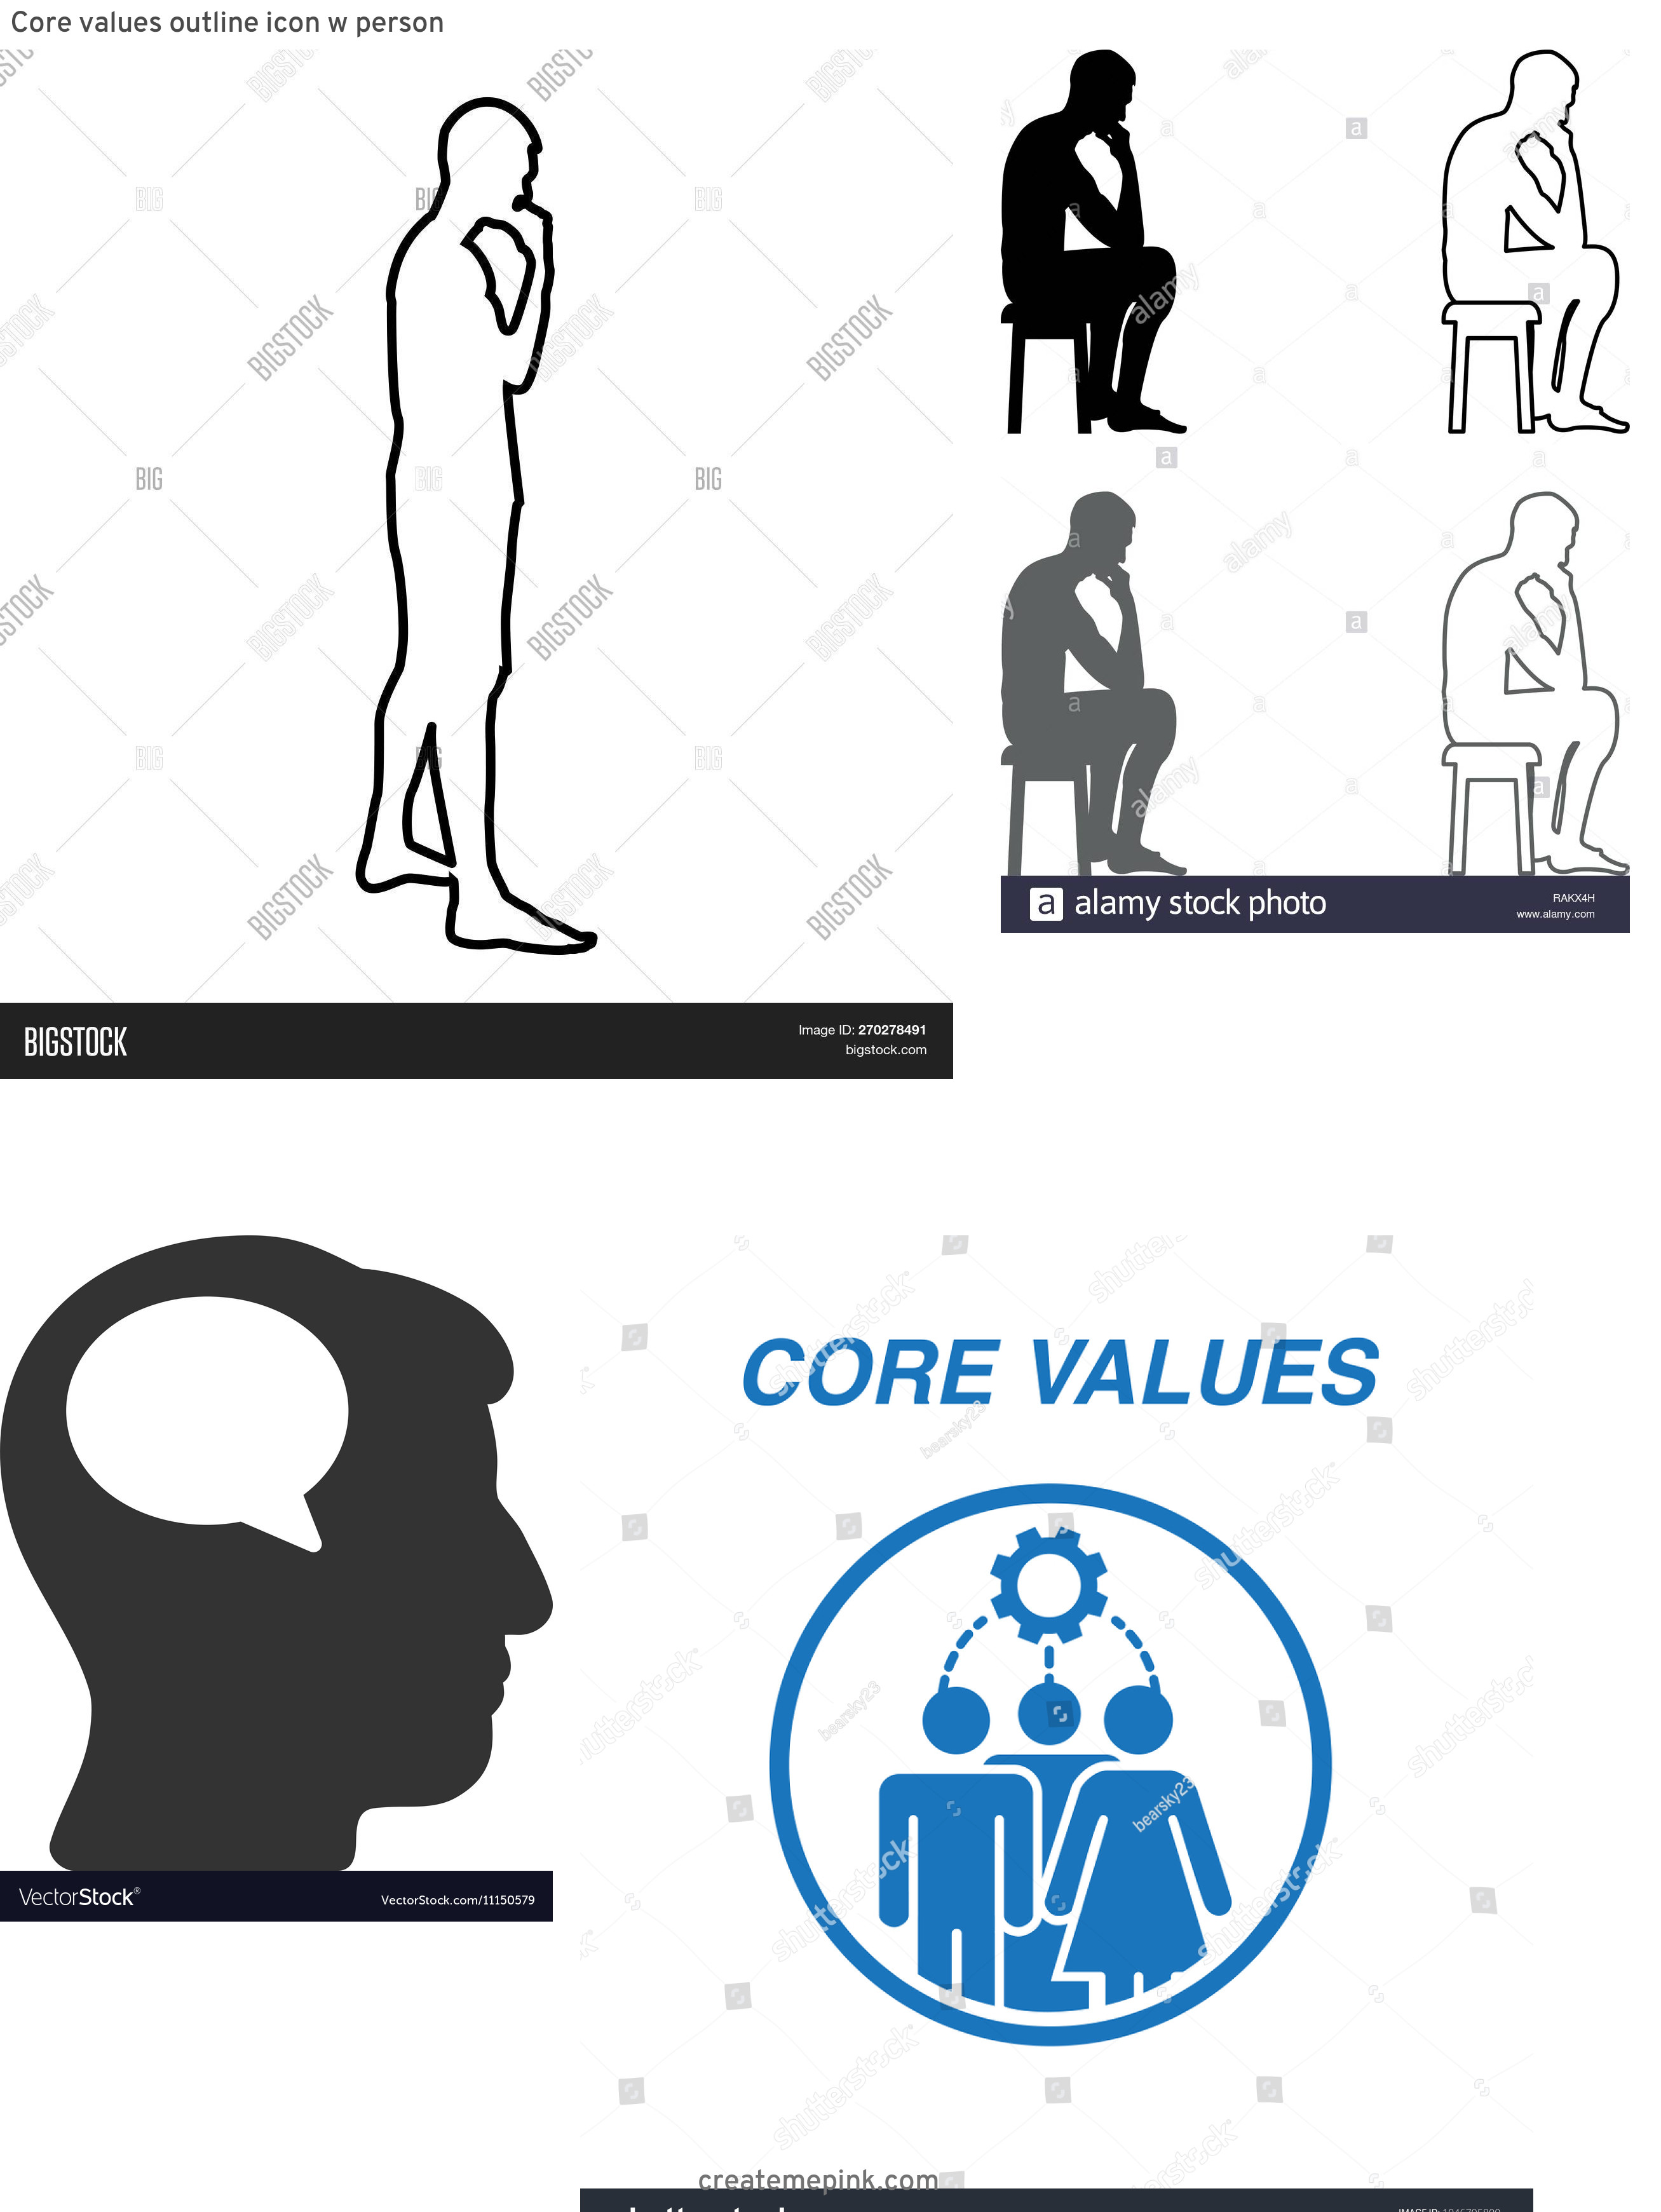 Person Thinking Outline Vector: Core Values Outline Icon W Person